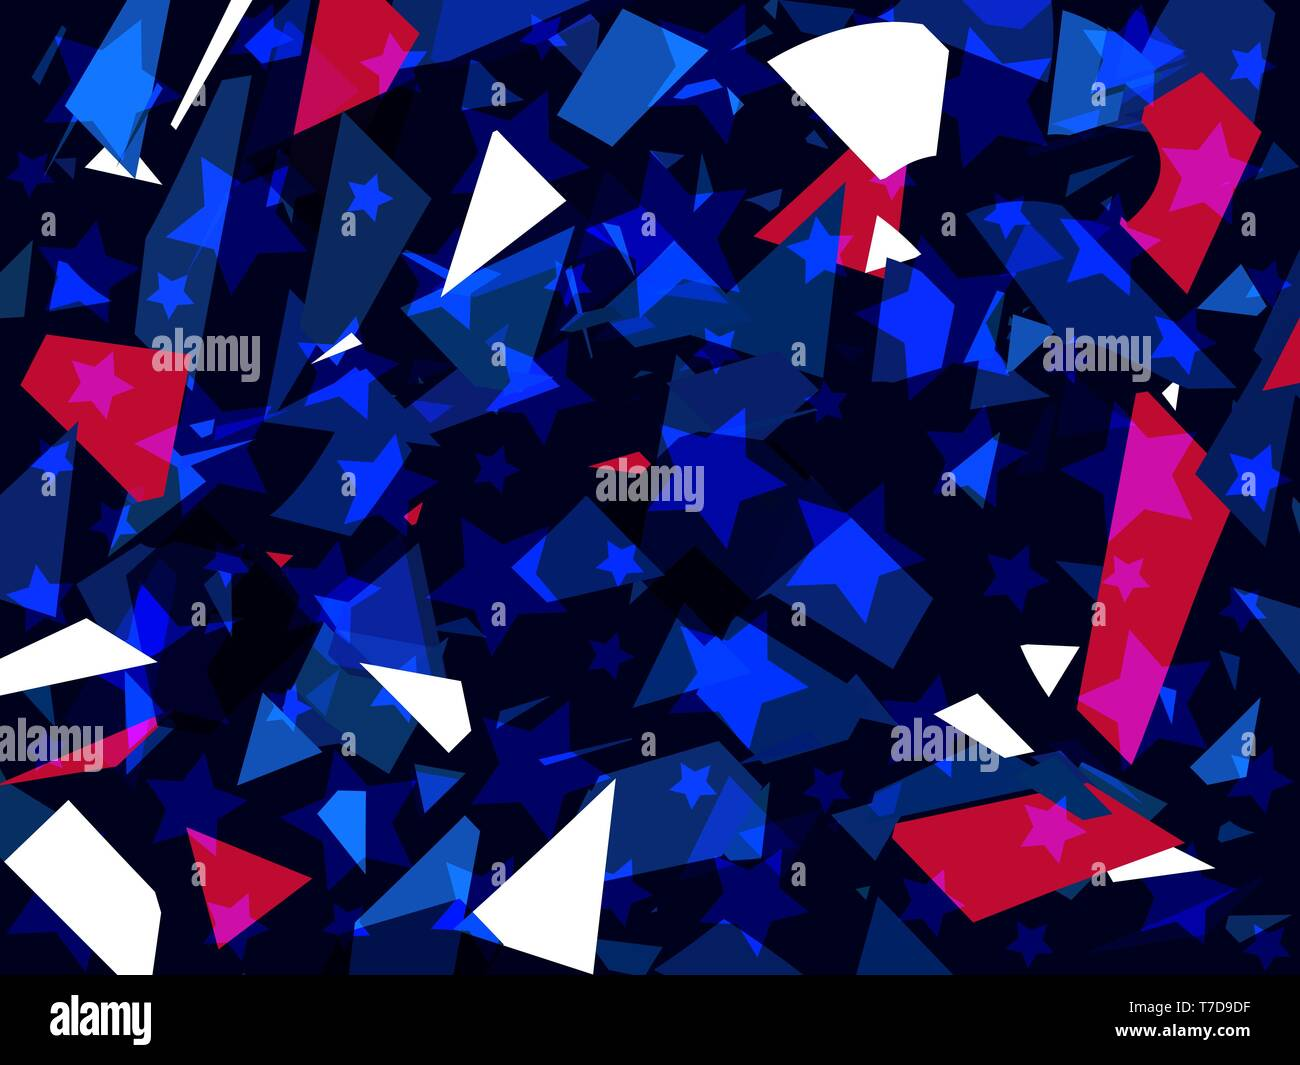 Glass explosion. Broken particles. Scatters of particles red and blue color. Geometric shapes. Vector illustration - Stock Vector